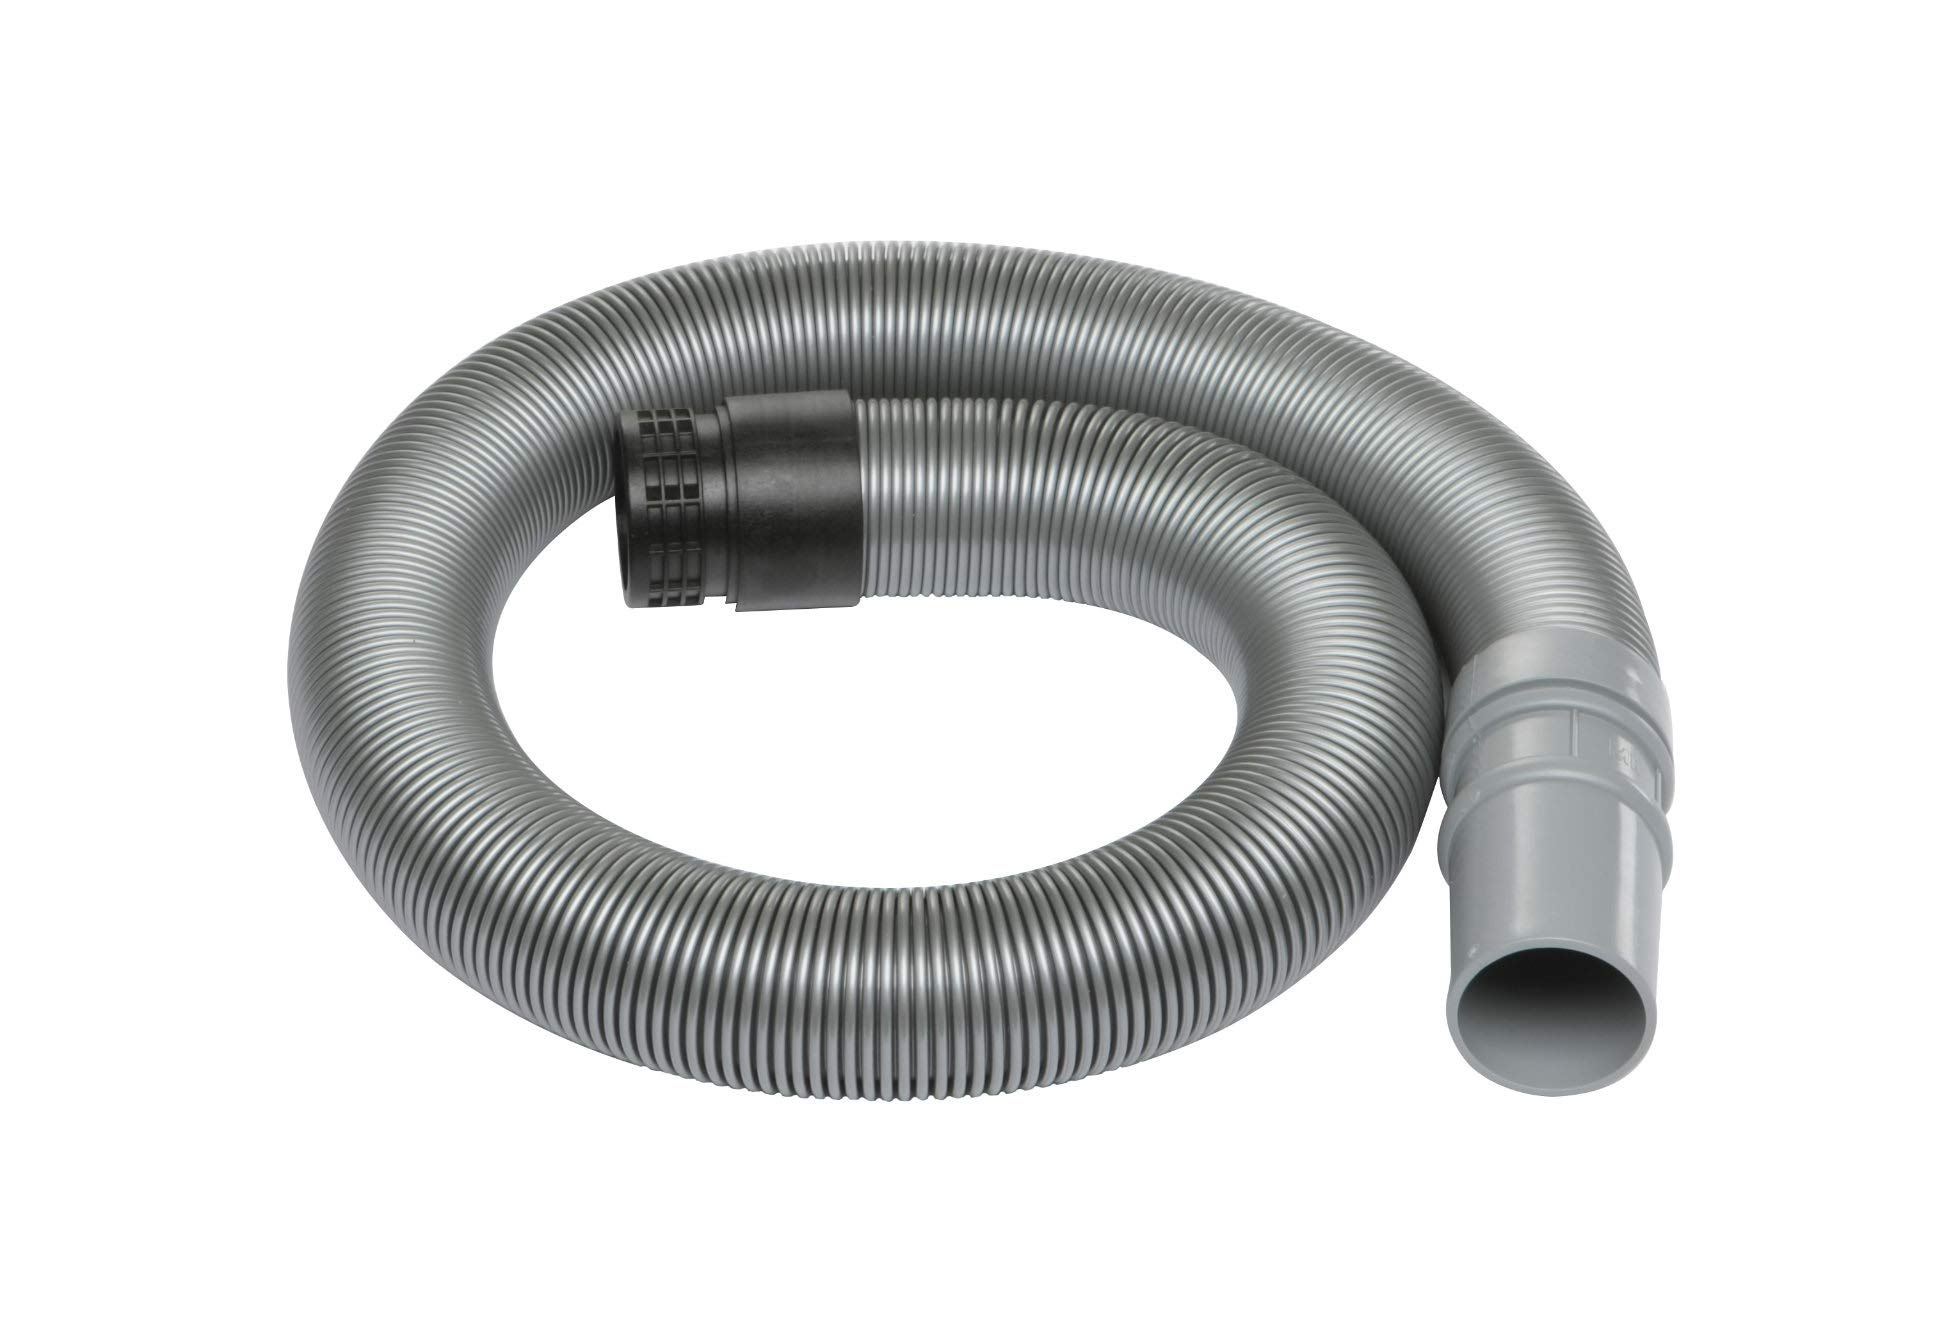 Sebo 5040sb Vacuum Hose for Automatic X/XP and Professional G by Sebo